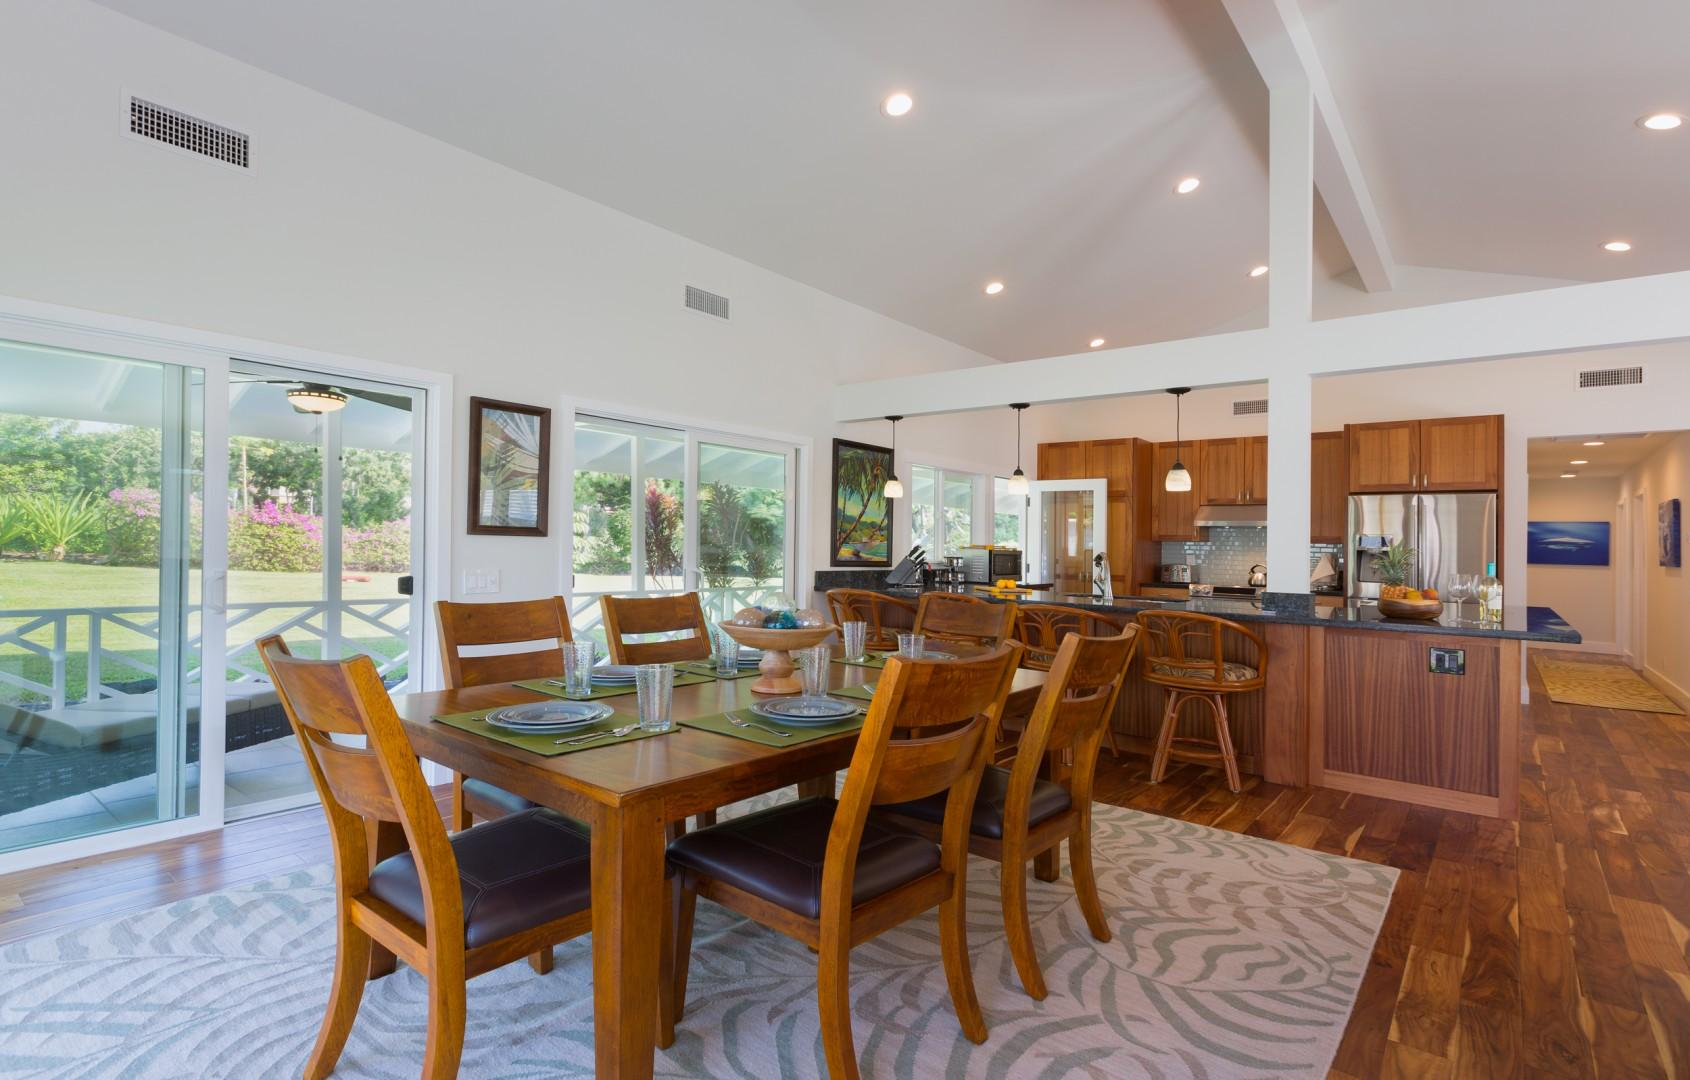 The open floor plan makes it easy for all to gather.